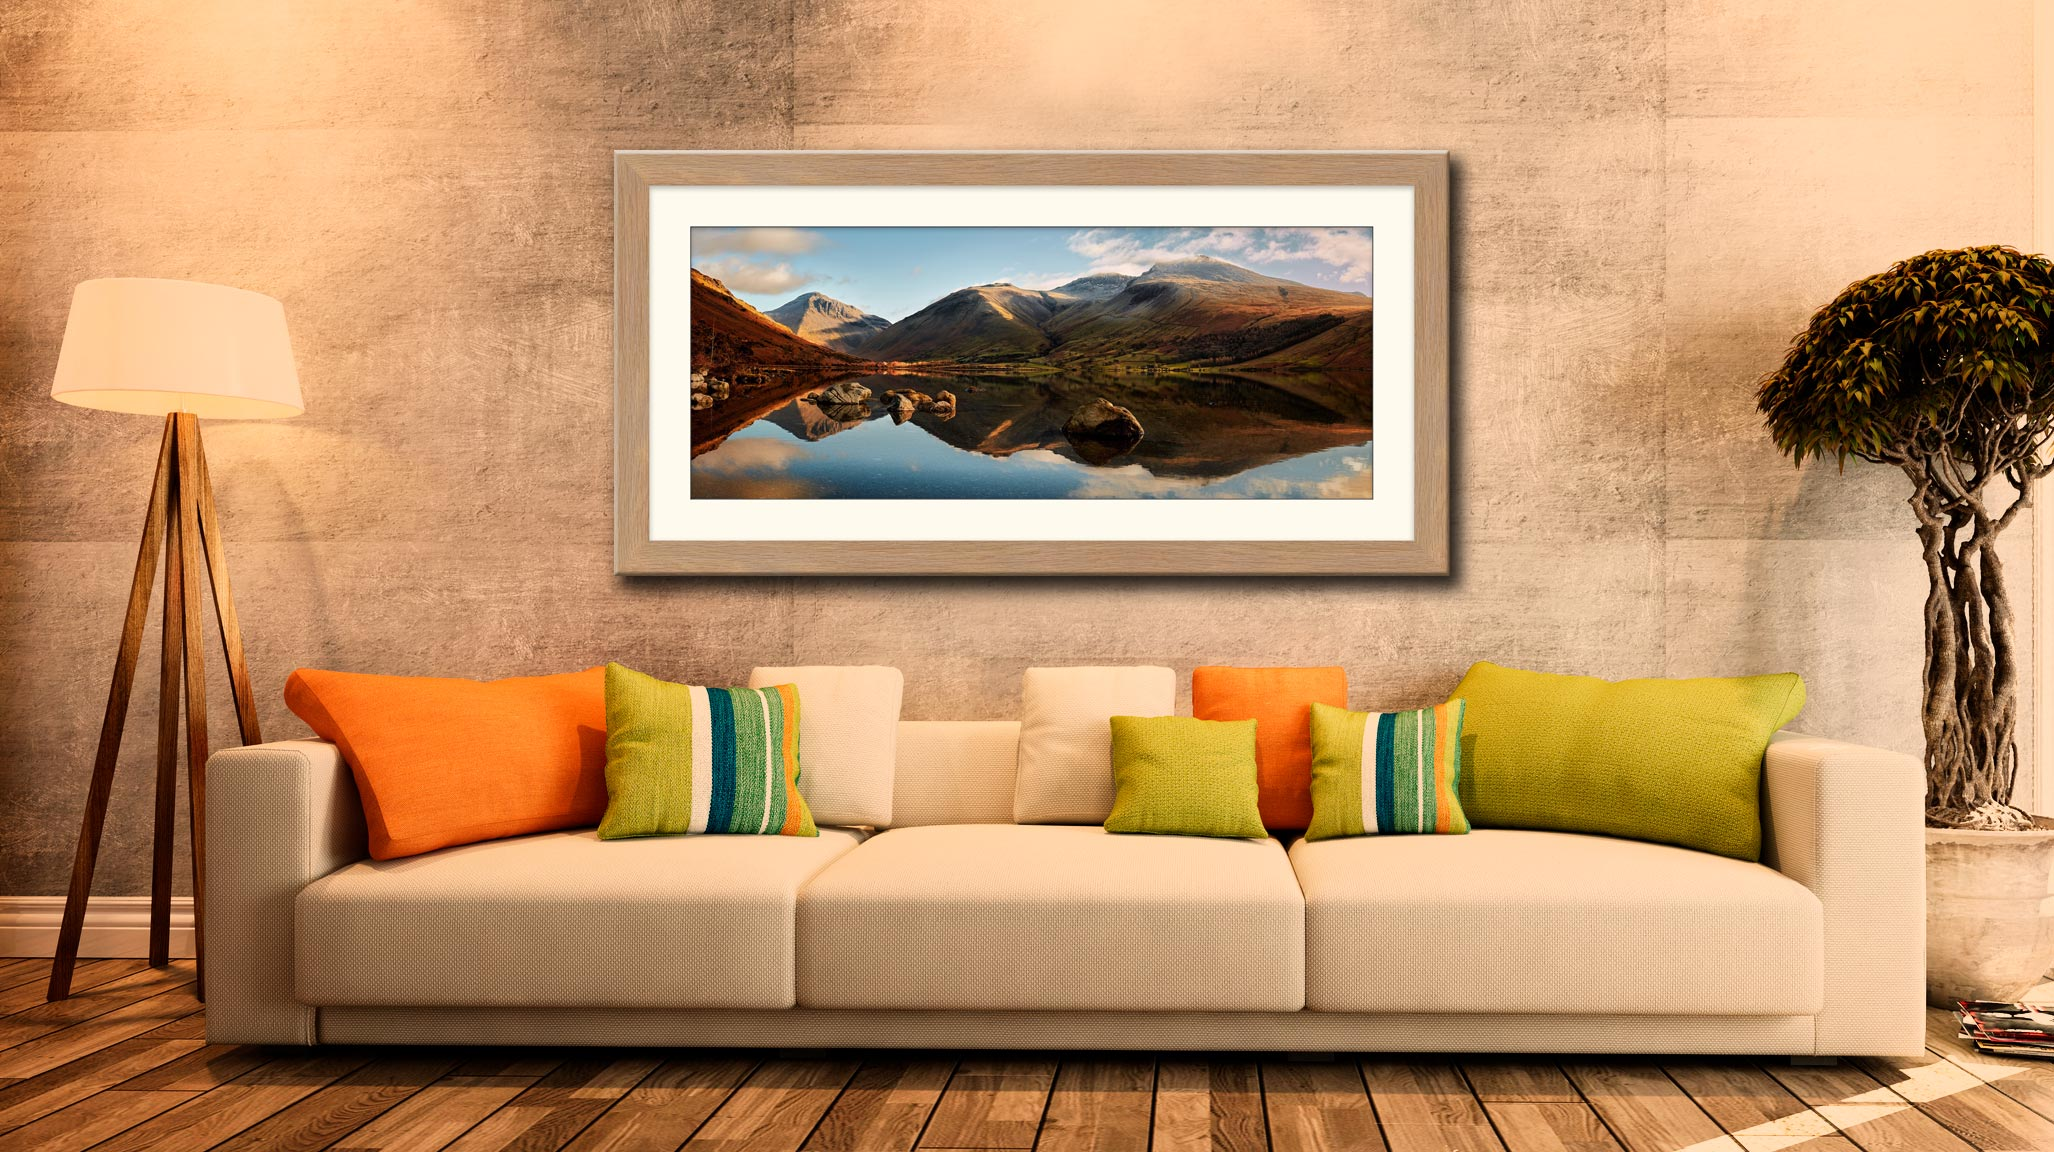 Morning Light on Scafell Pike - Framed Print with Mount on Wall